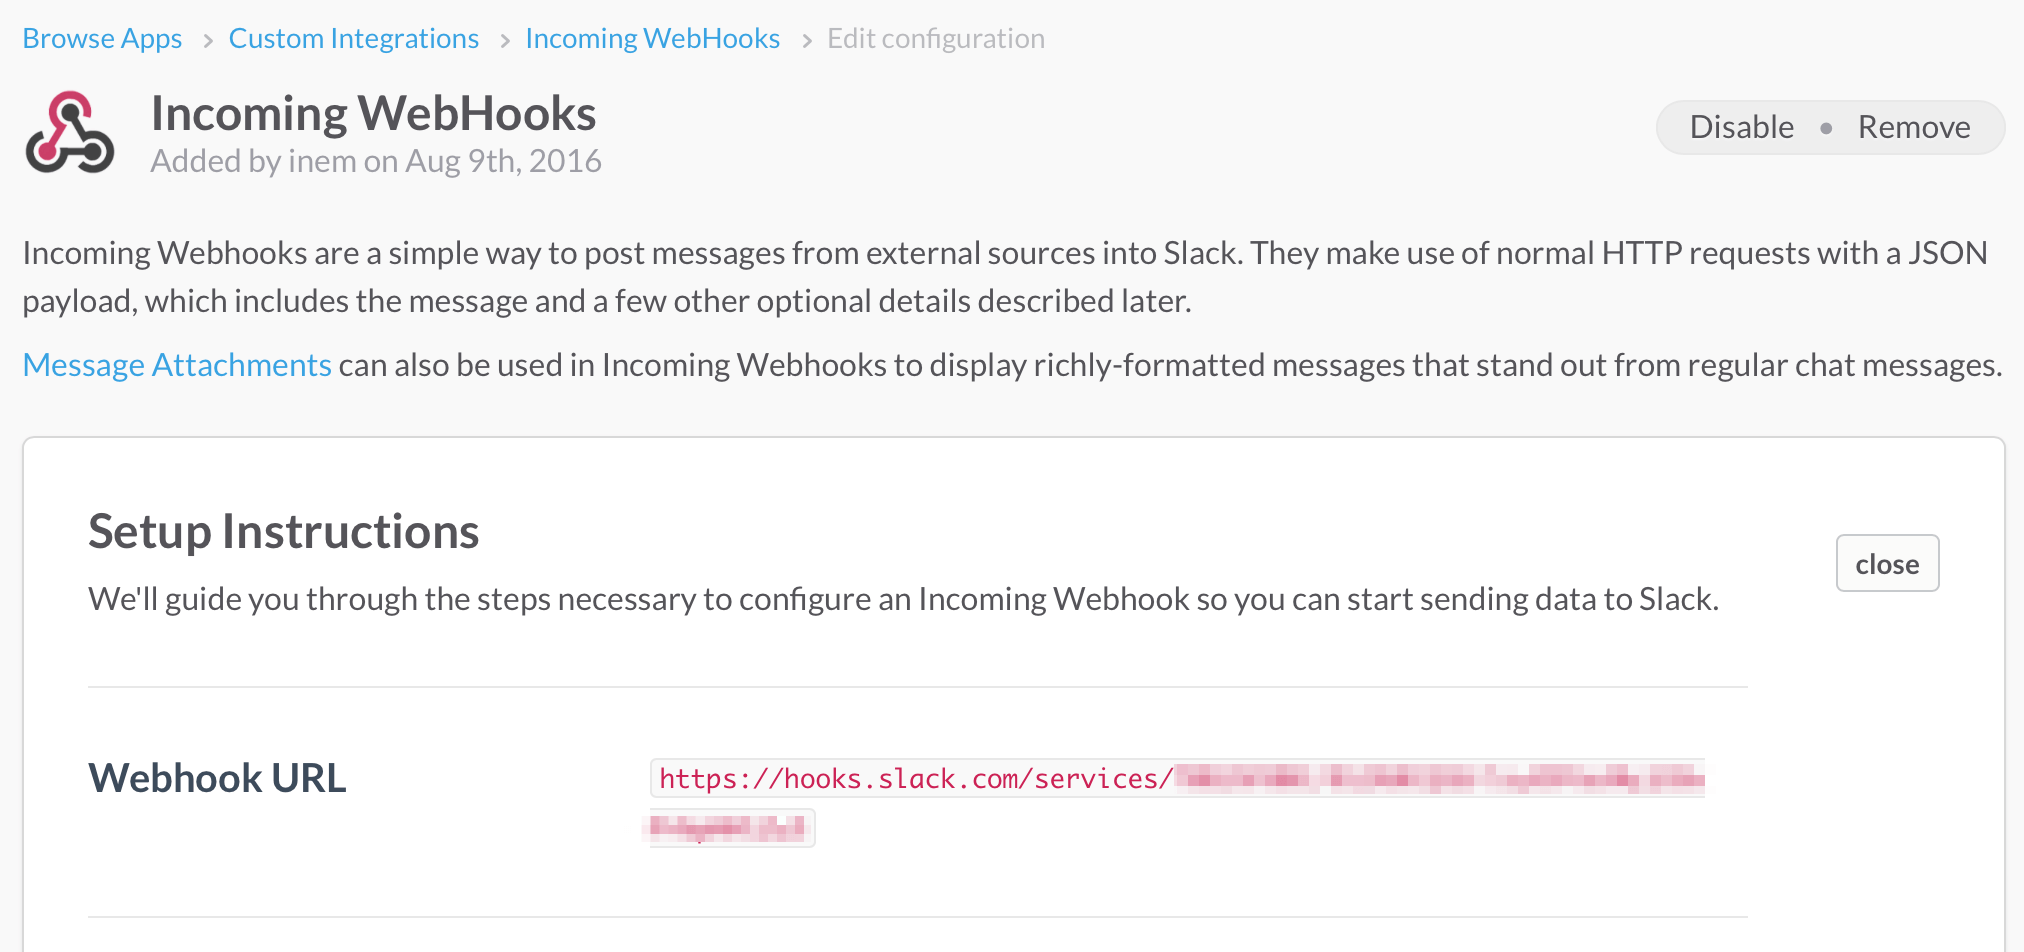 Grabbing Incoming WebHook URL in Slack